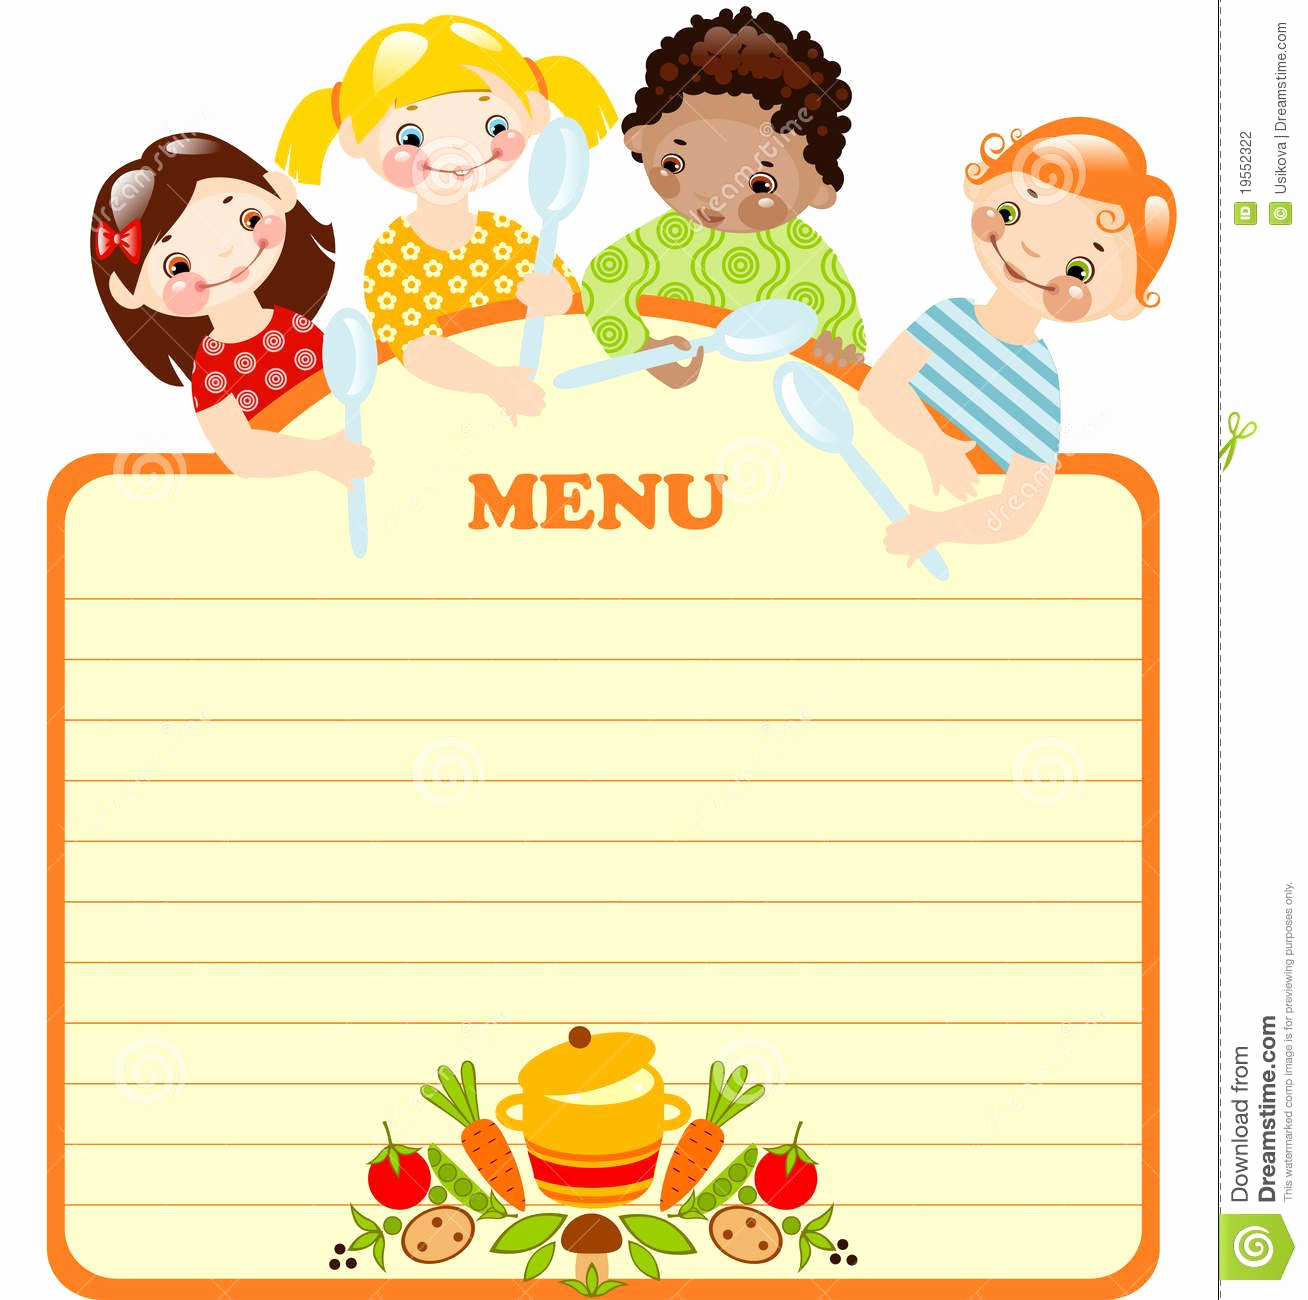 Free Kid Menu Template Lovely Blank Kids Menu Template Invitation Templates